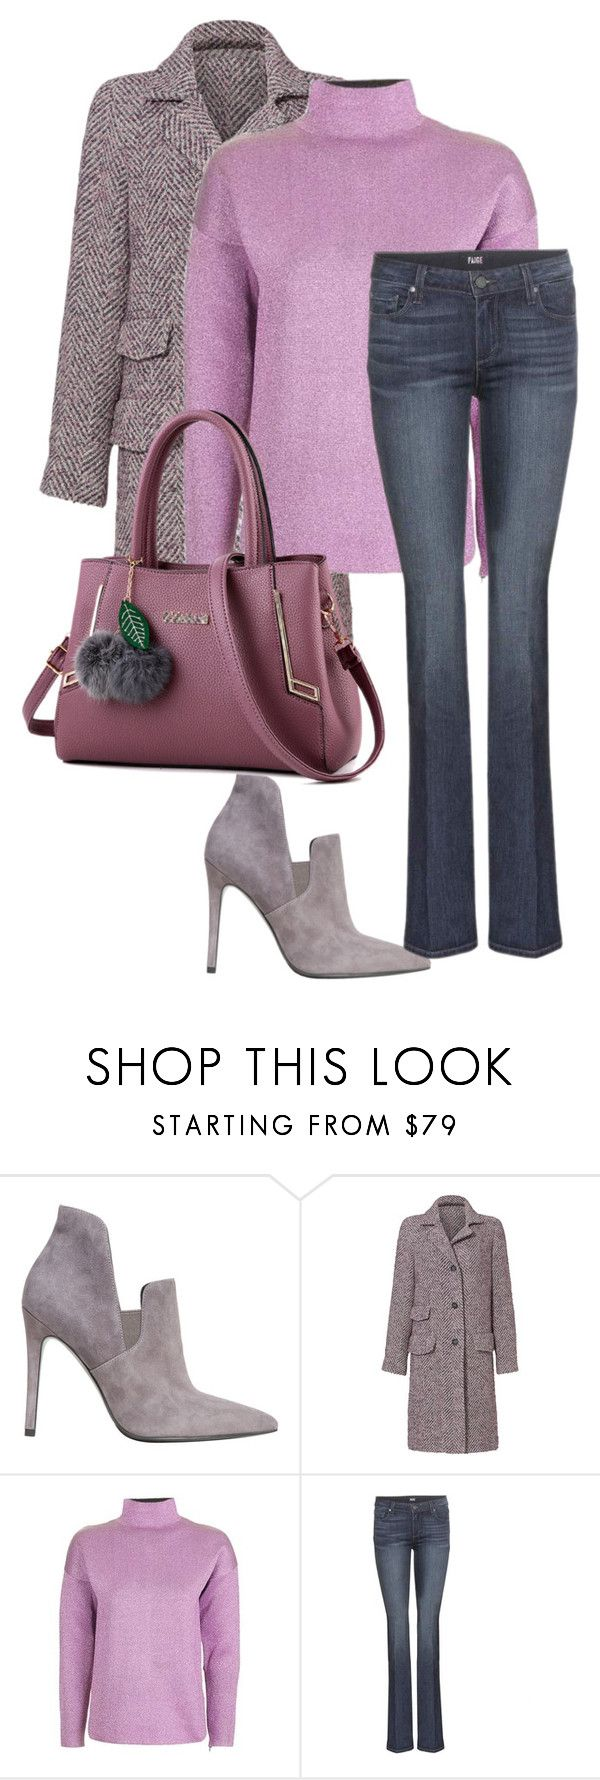 """""""Untitled 18"""" by havlova-blanka on Polyvore featuring Kendall + Kylie, Rebecca Taylor, Topshop and Paige Denim"""